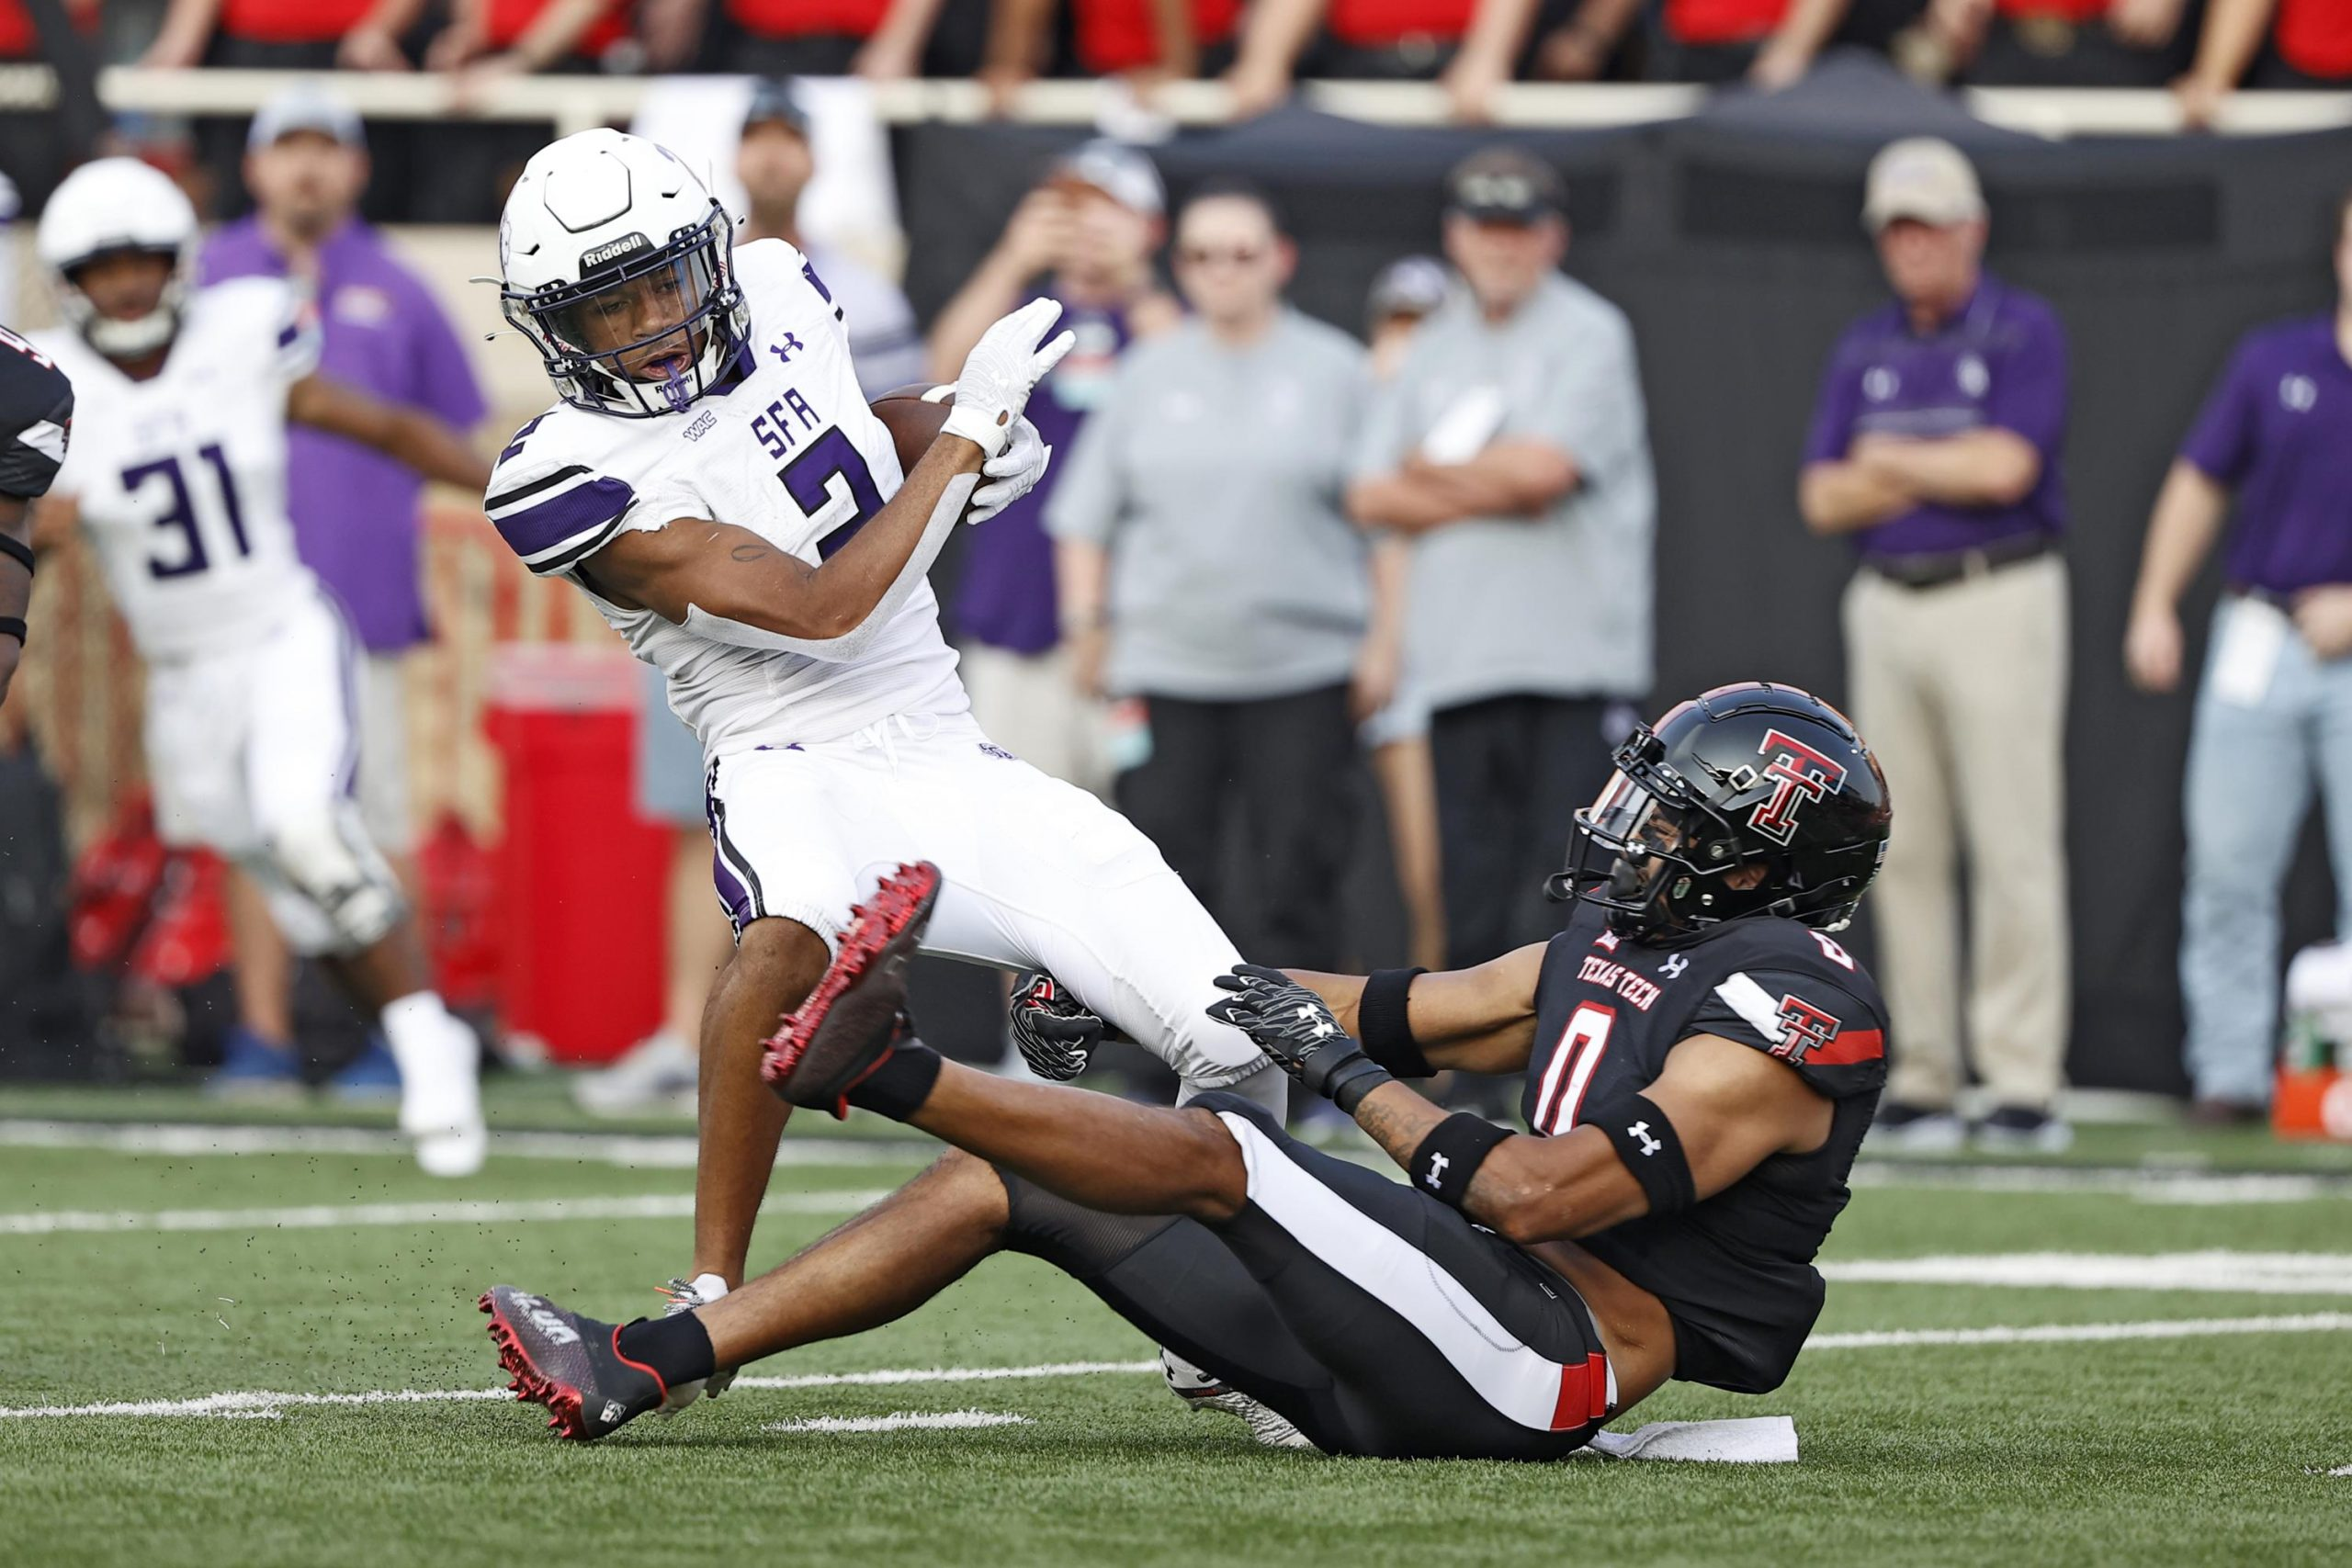 Texas Tech hangs on for 28-22 win over FCS' Stephen F Austin 6